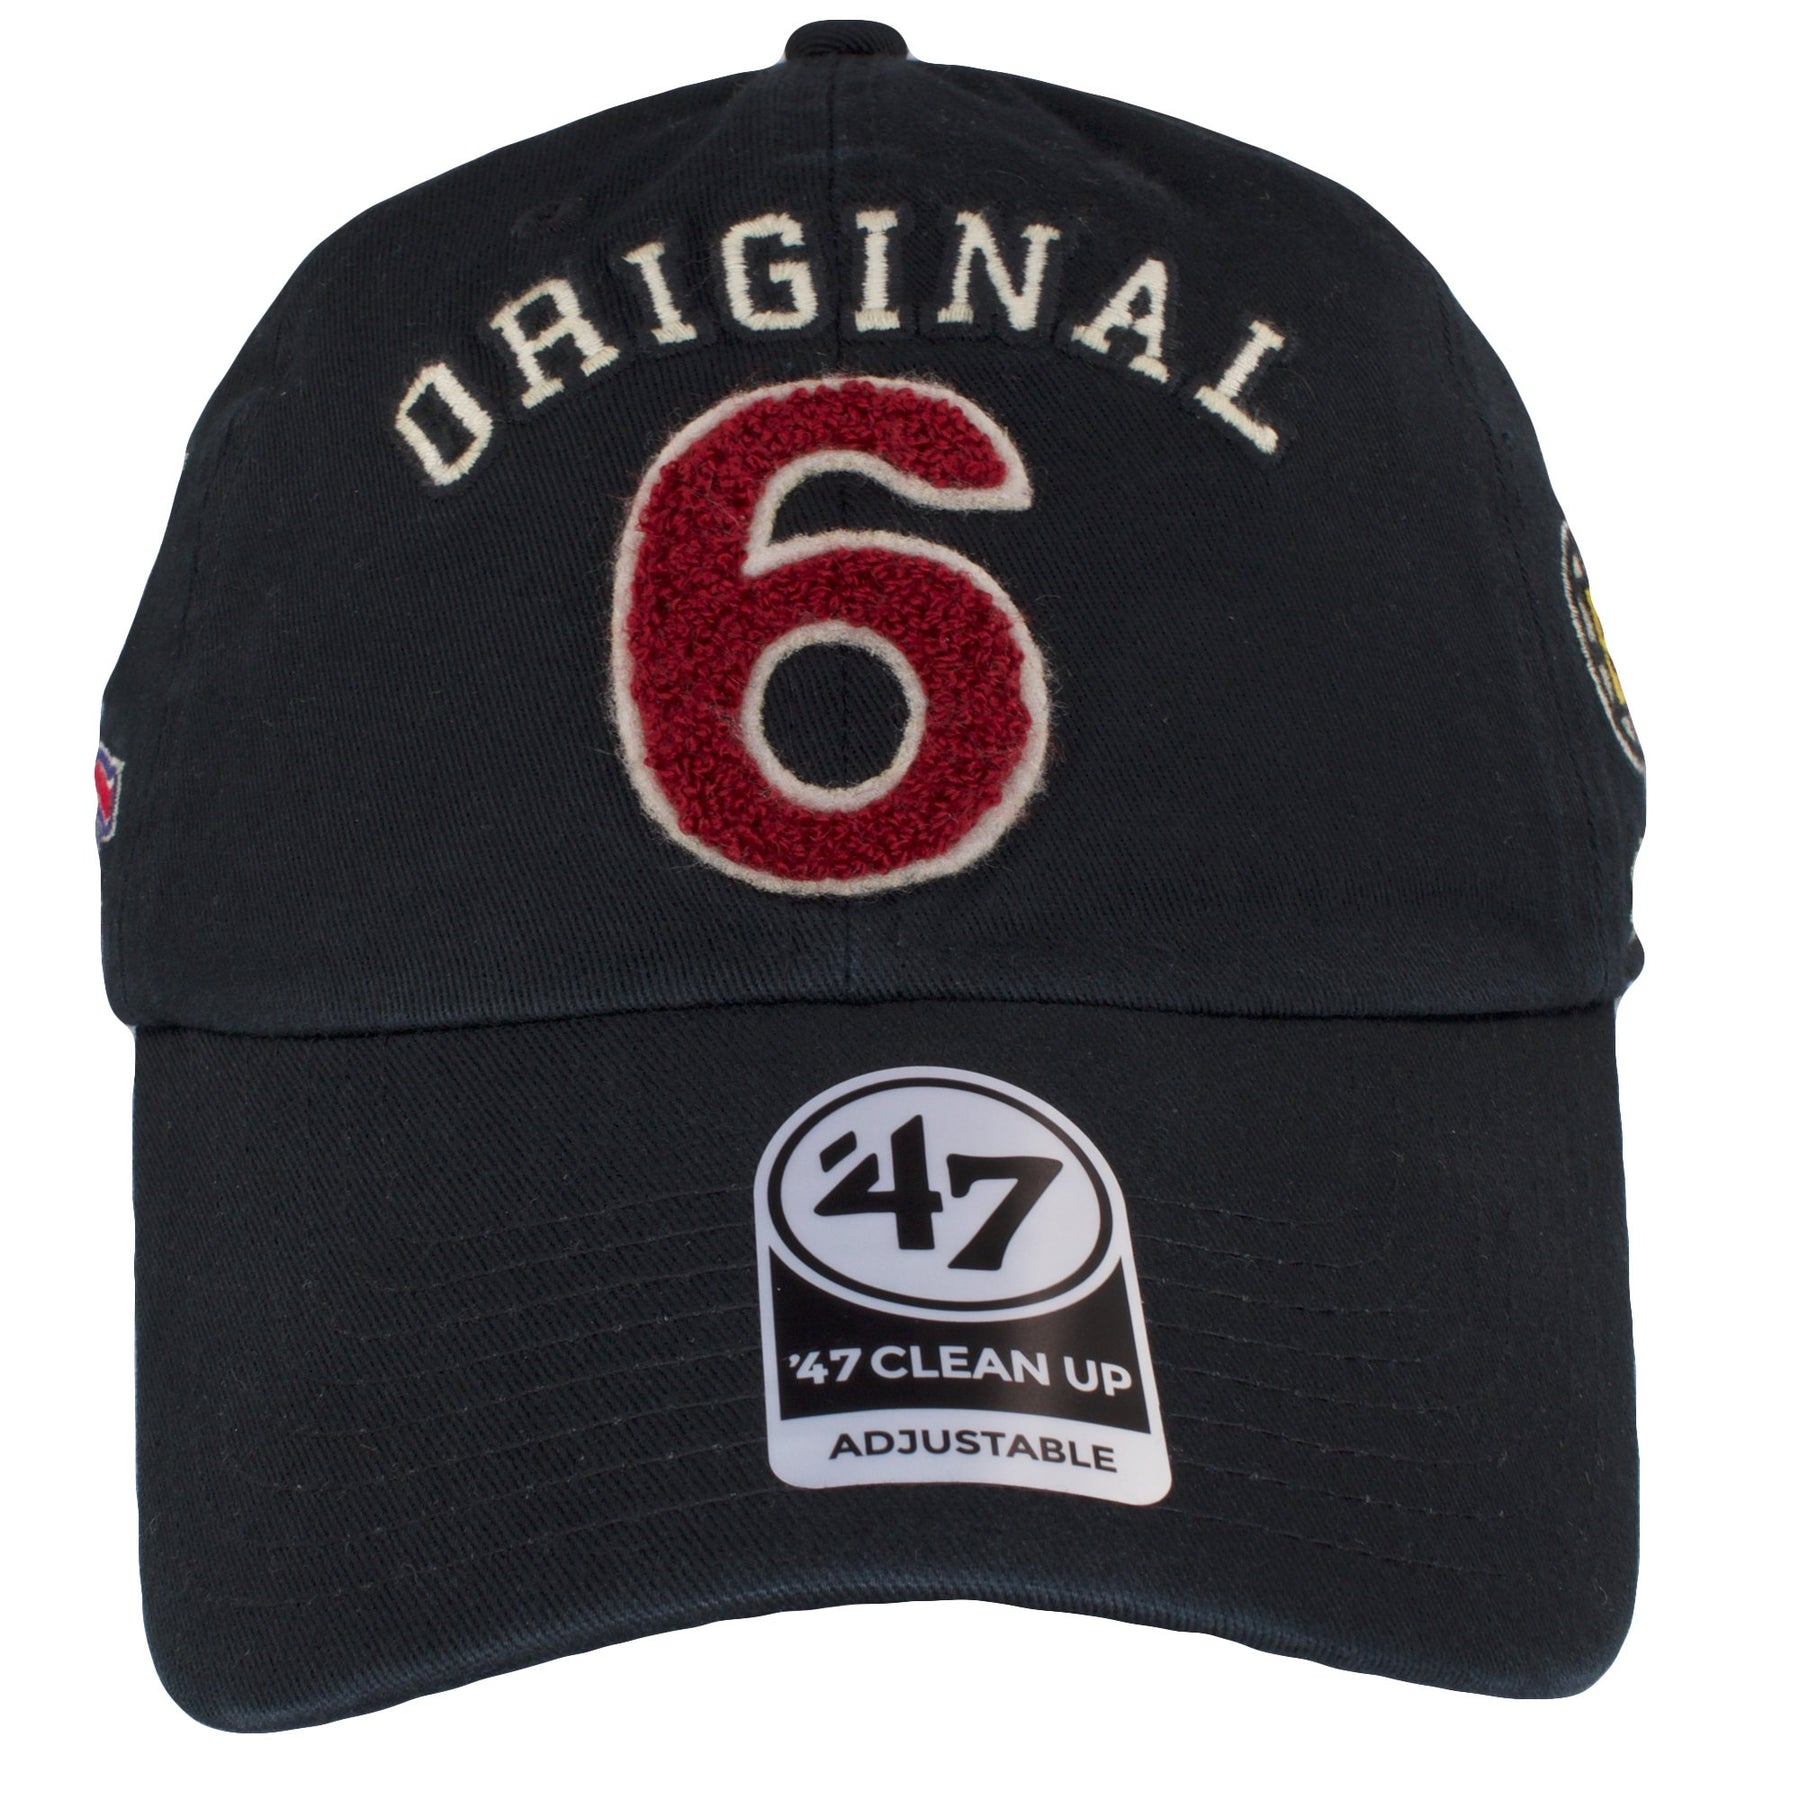 wholesale dealer c6372 08058 on the front of the black original six dad hat is the original 6 lettering  in